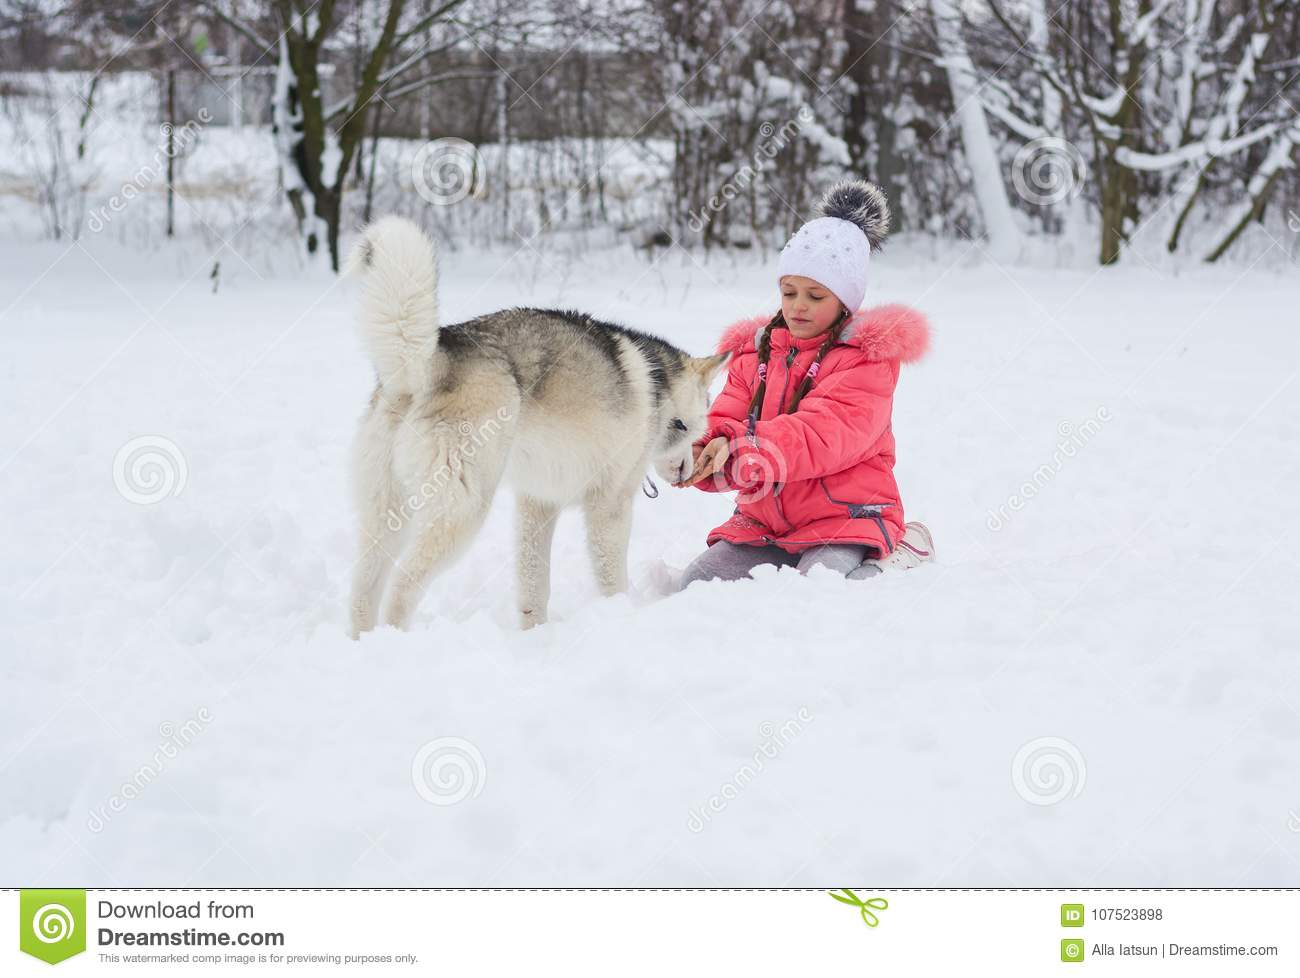 523869a6cba A smiling girl is feeding a Husky dog in the countryside. Little girl  playing with a Siberian husky breed dog in the winter in the snow